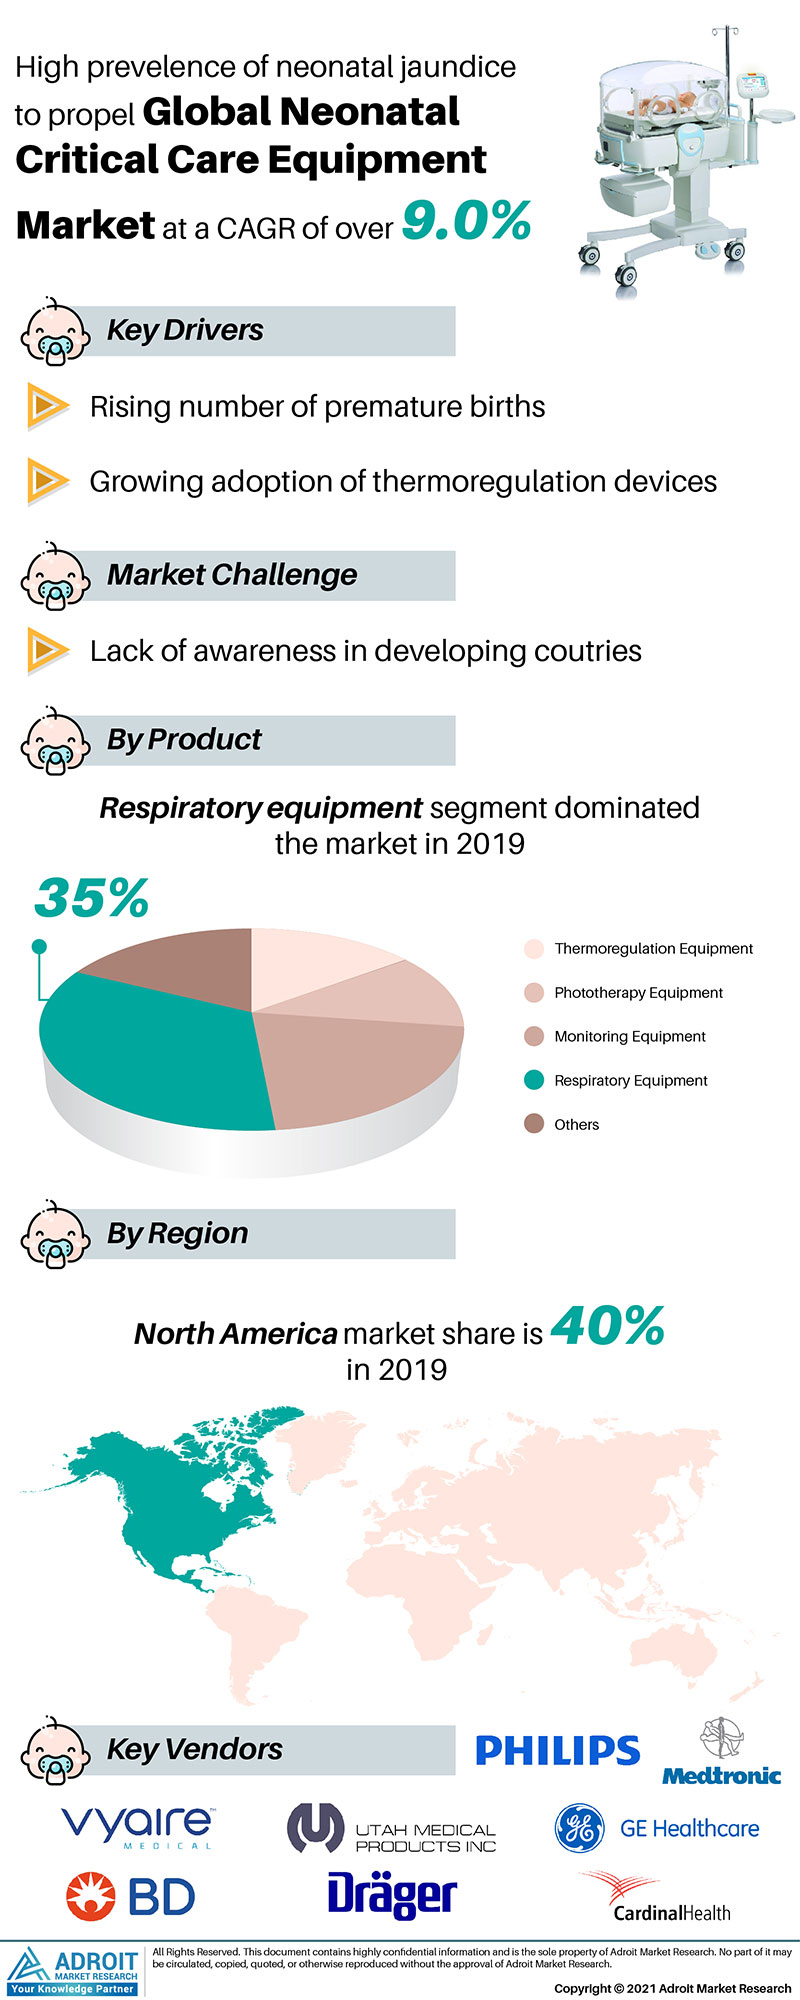 Neonatal Critical Care Equipment Market Size 2017 By Application, Product, Region and Forecast 2019 to 2025